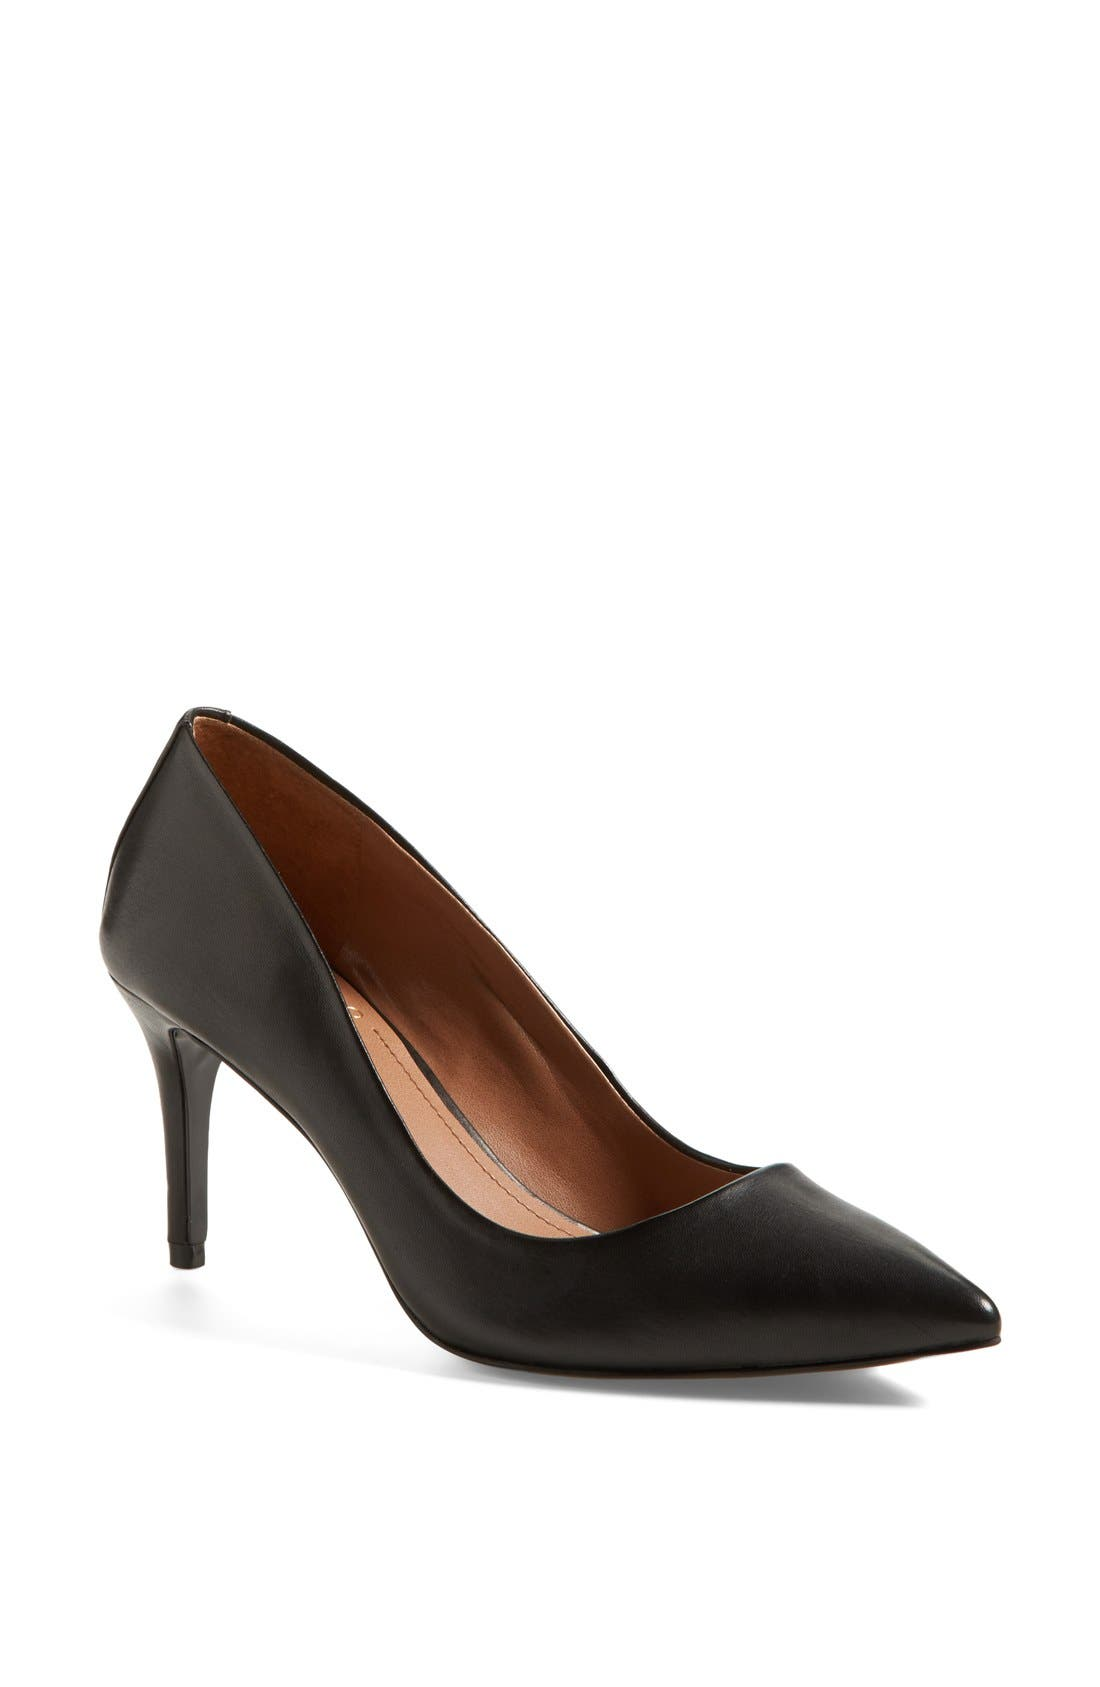 Main Image - Vince Camuto 'Caprita' Leather Pointy Toe Pump (Nordstrom Exclusive) (Women)